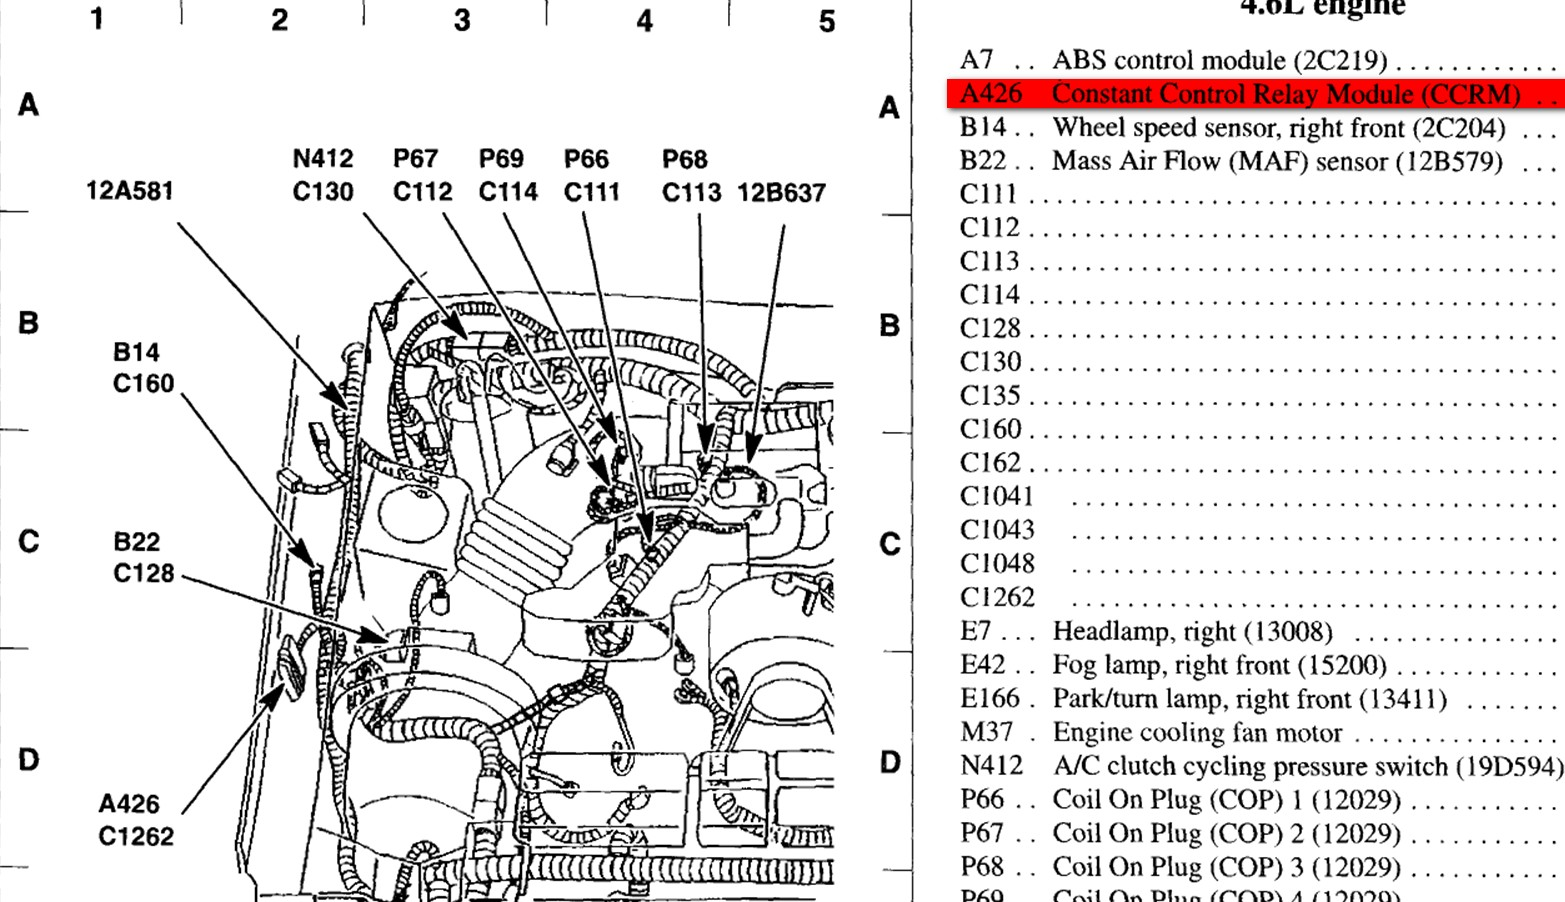 OJRcYQ on 2001 ford mustang fuse box diagram